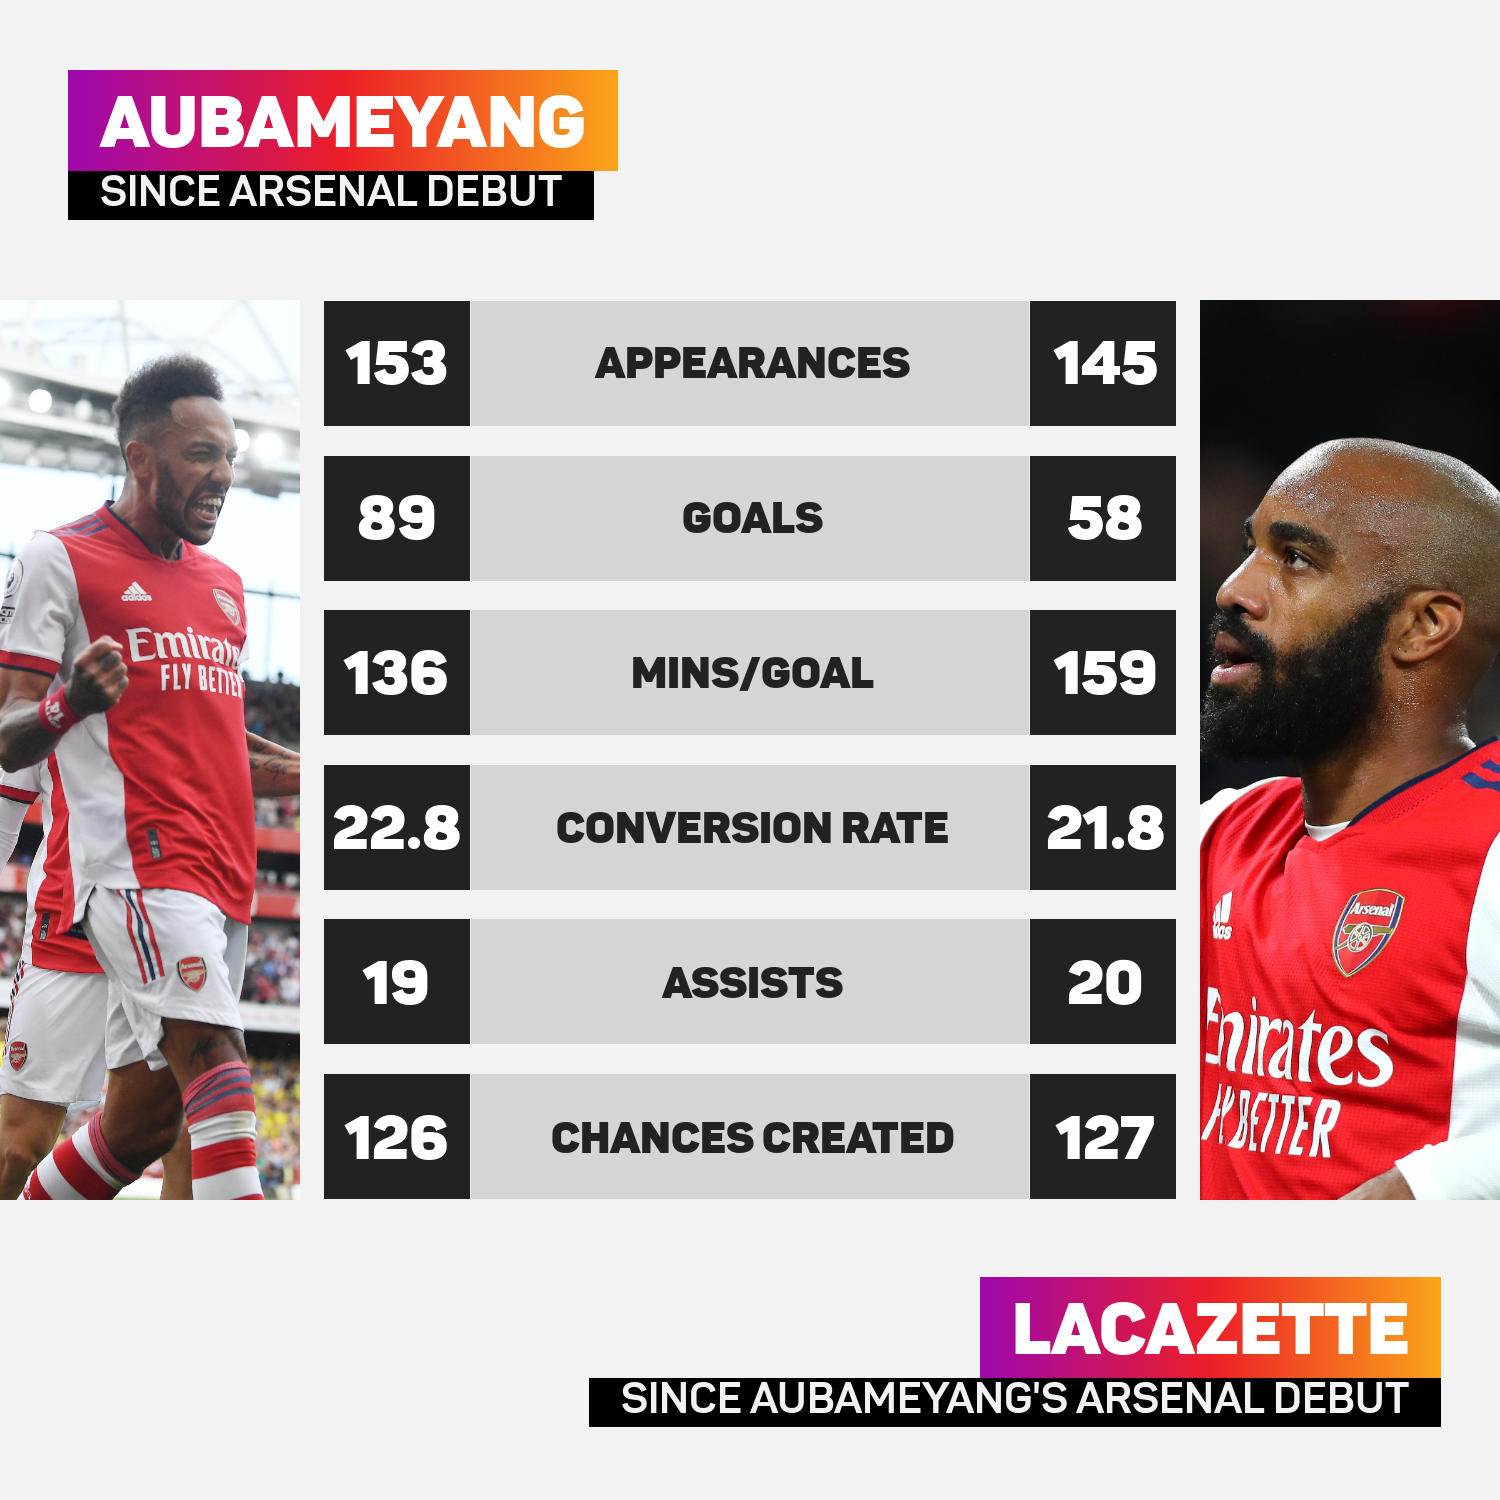 Aubameyang and Lacazette's records since February 2018